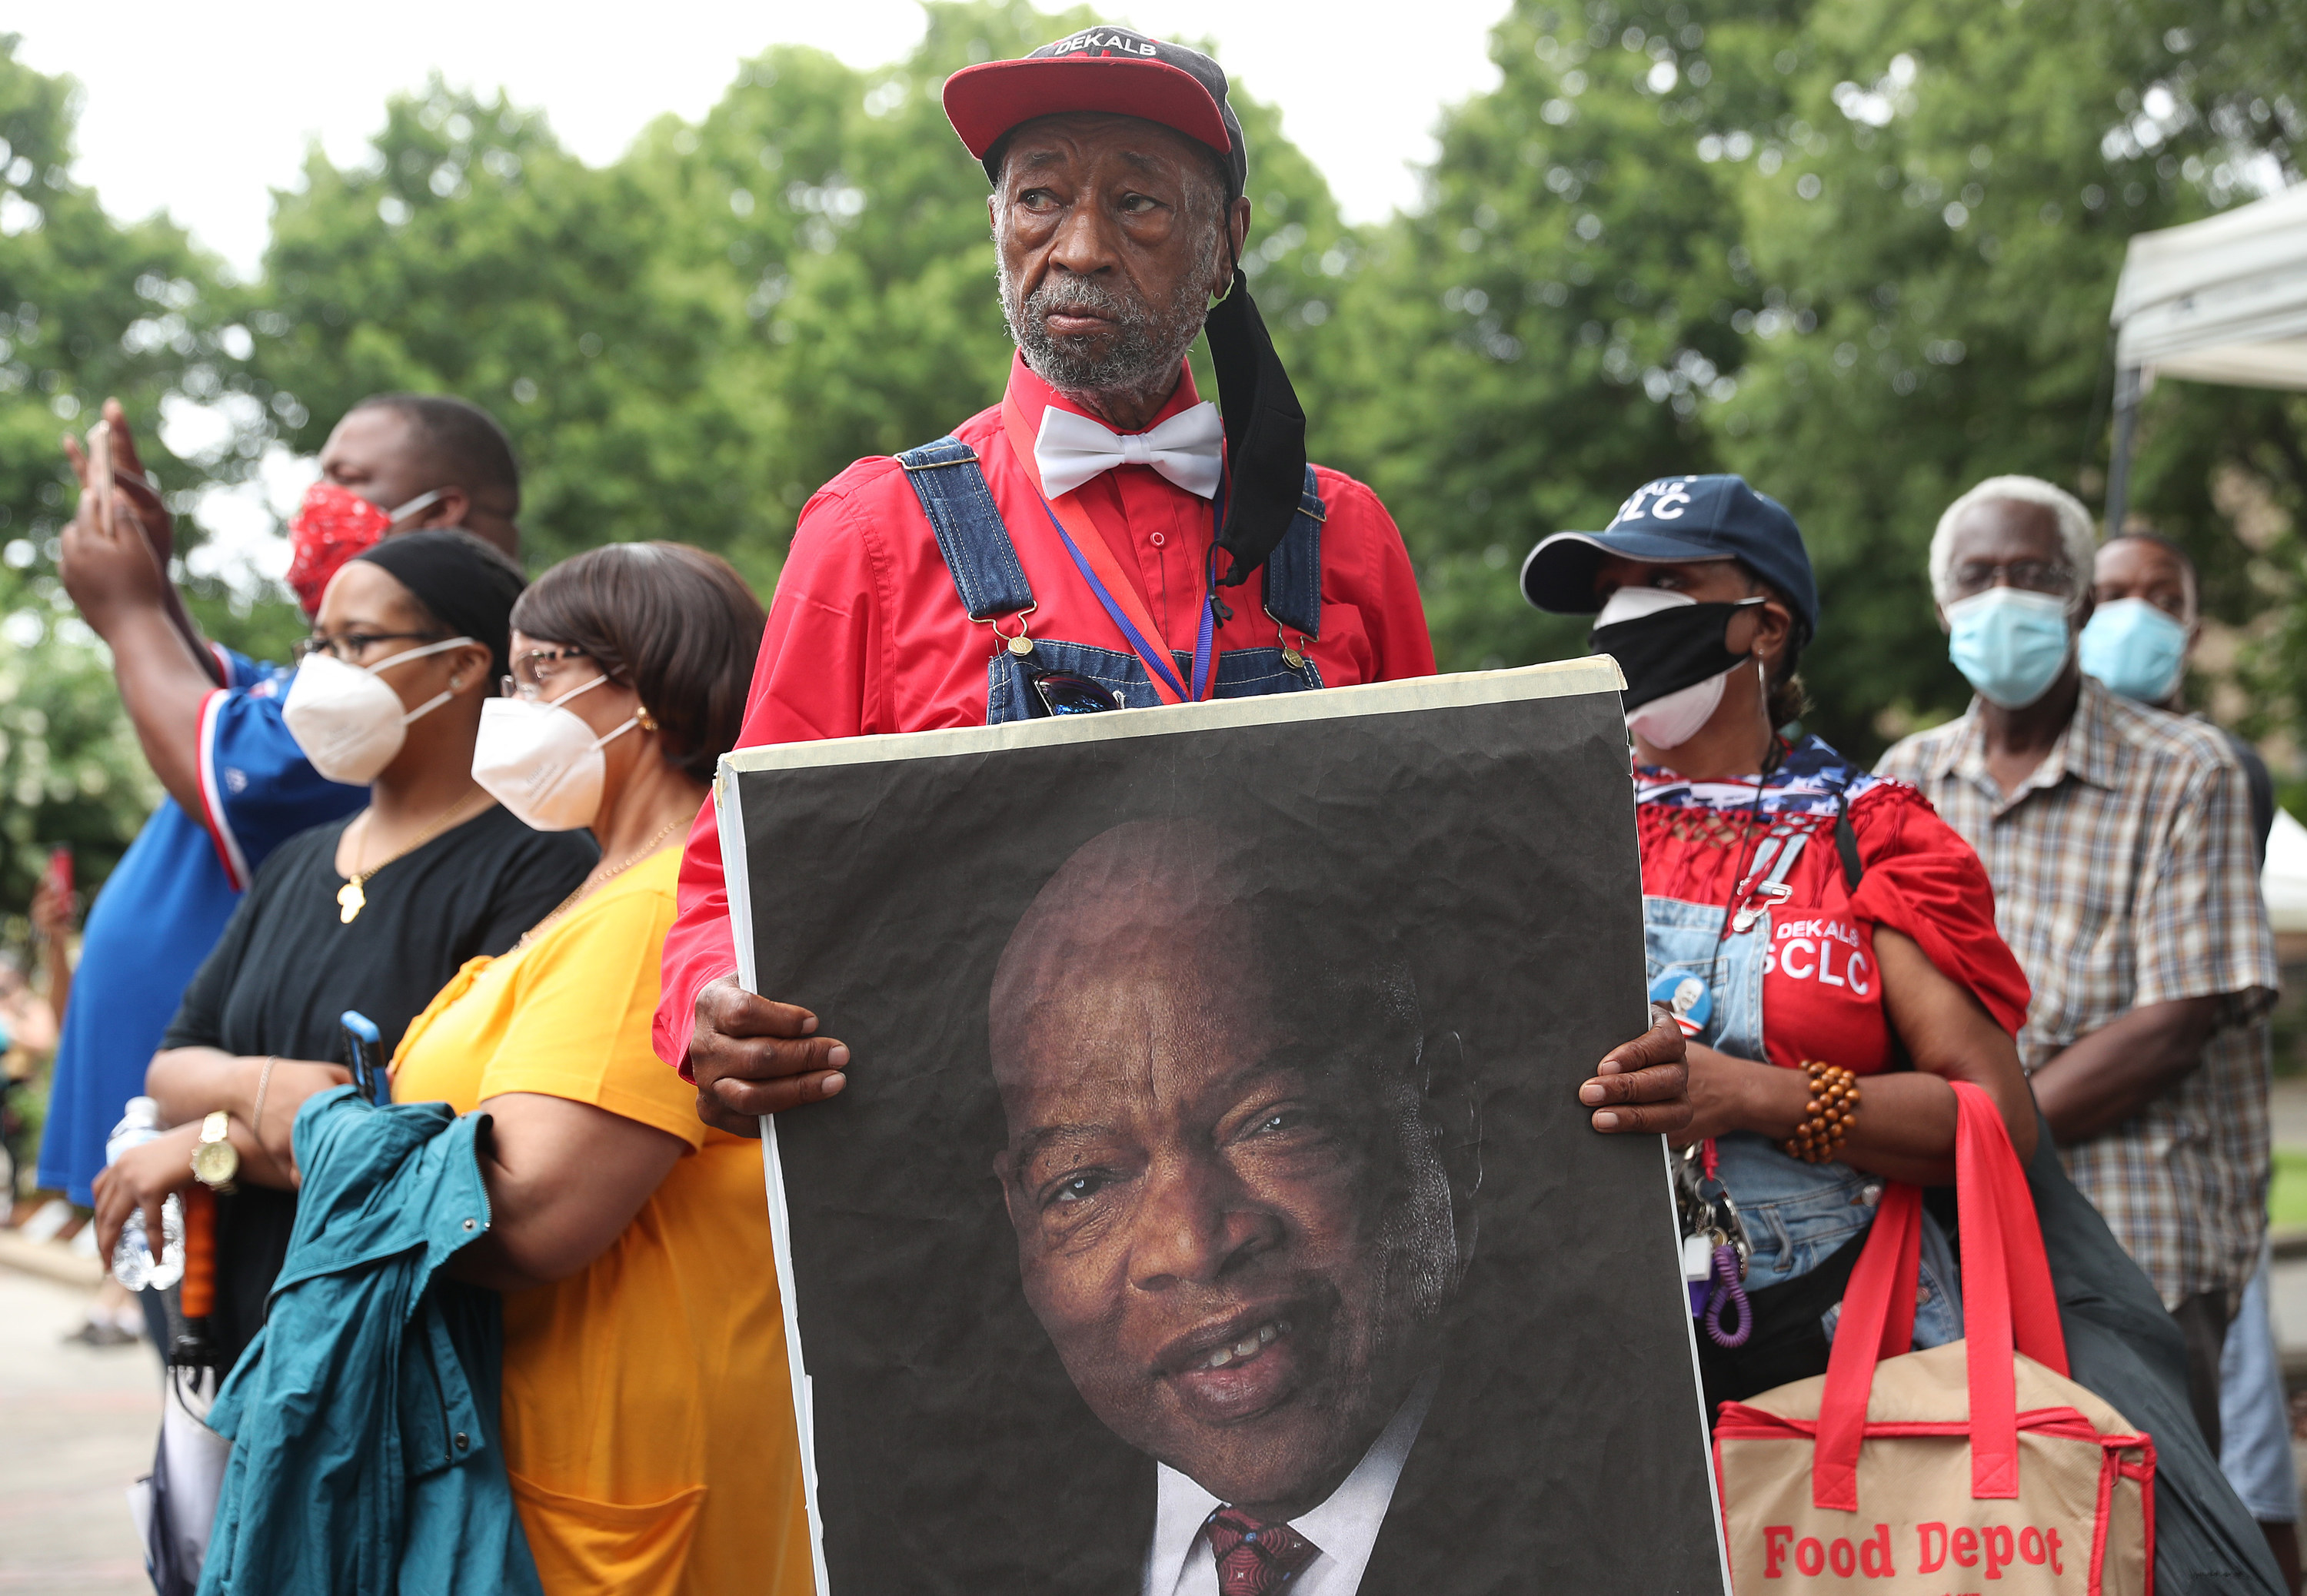 A man holds up a large image of John Lewis